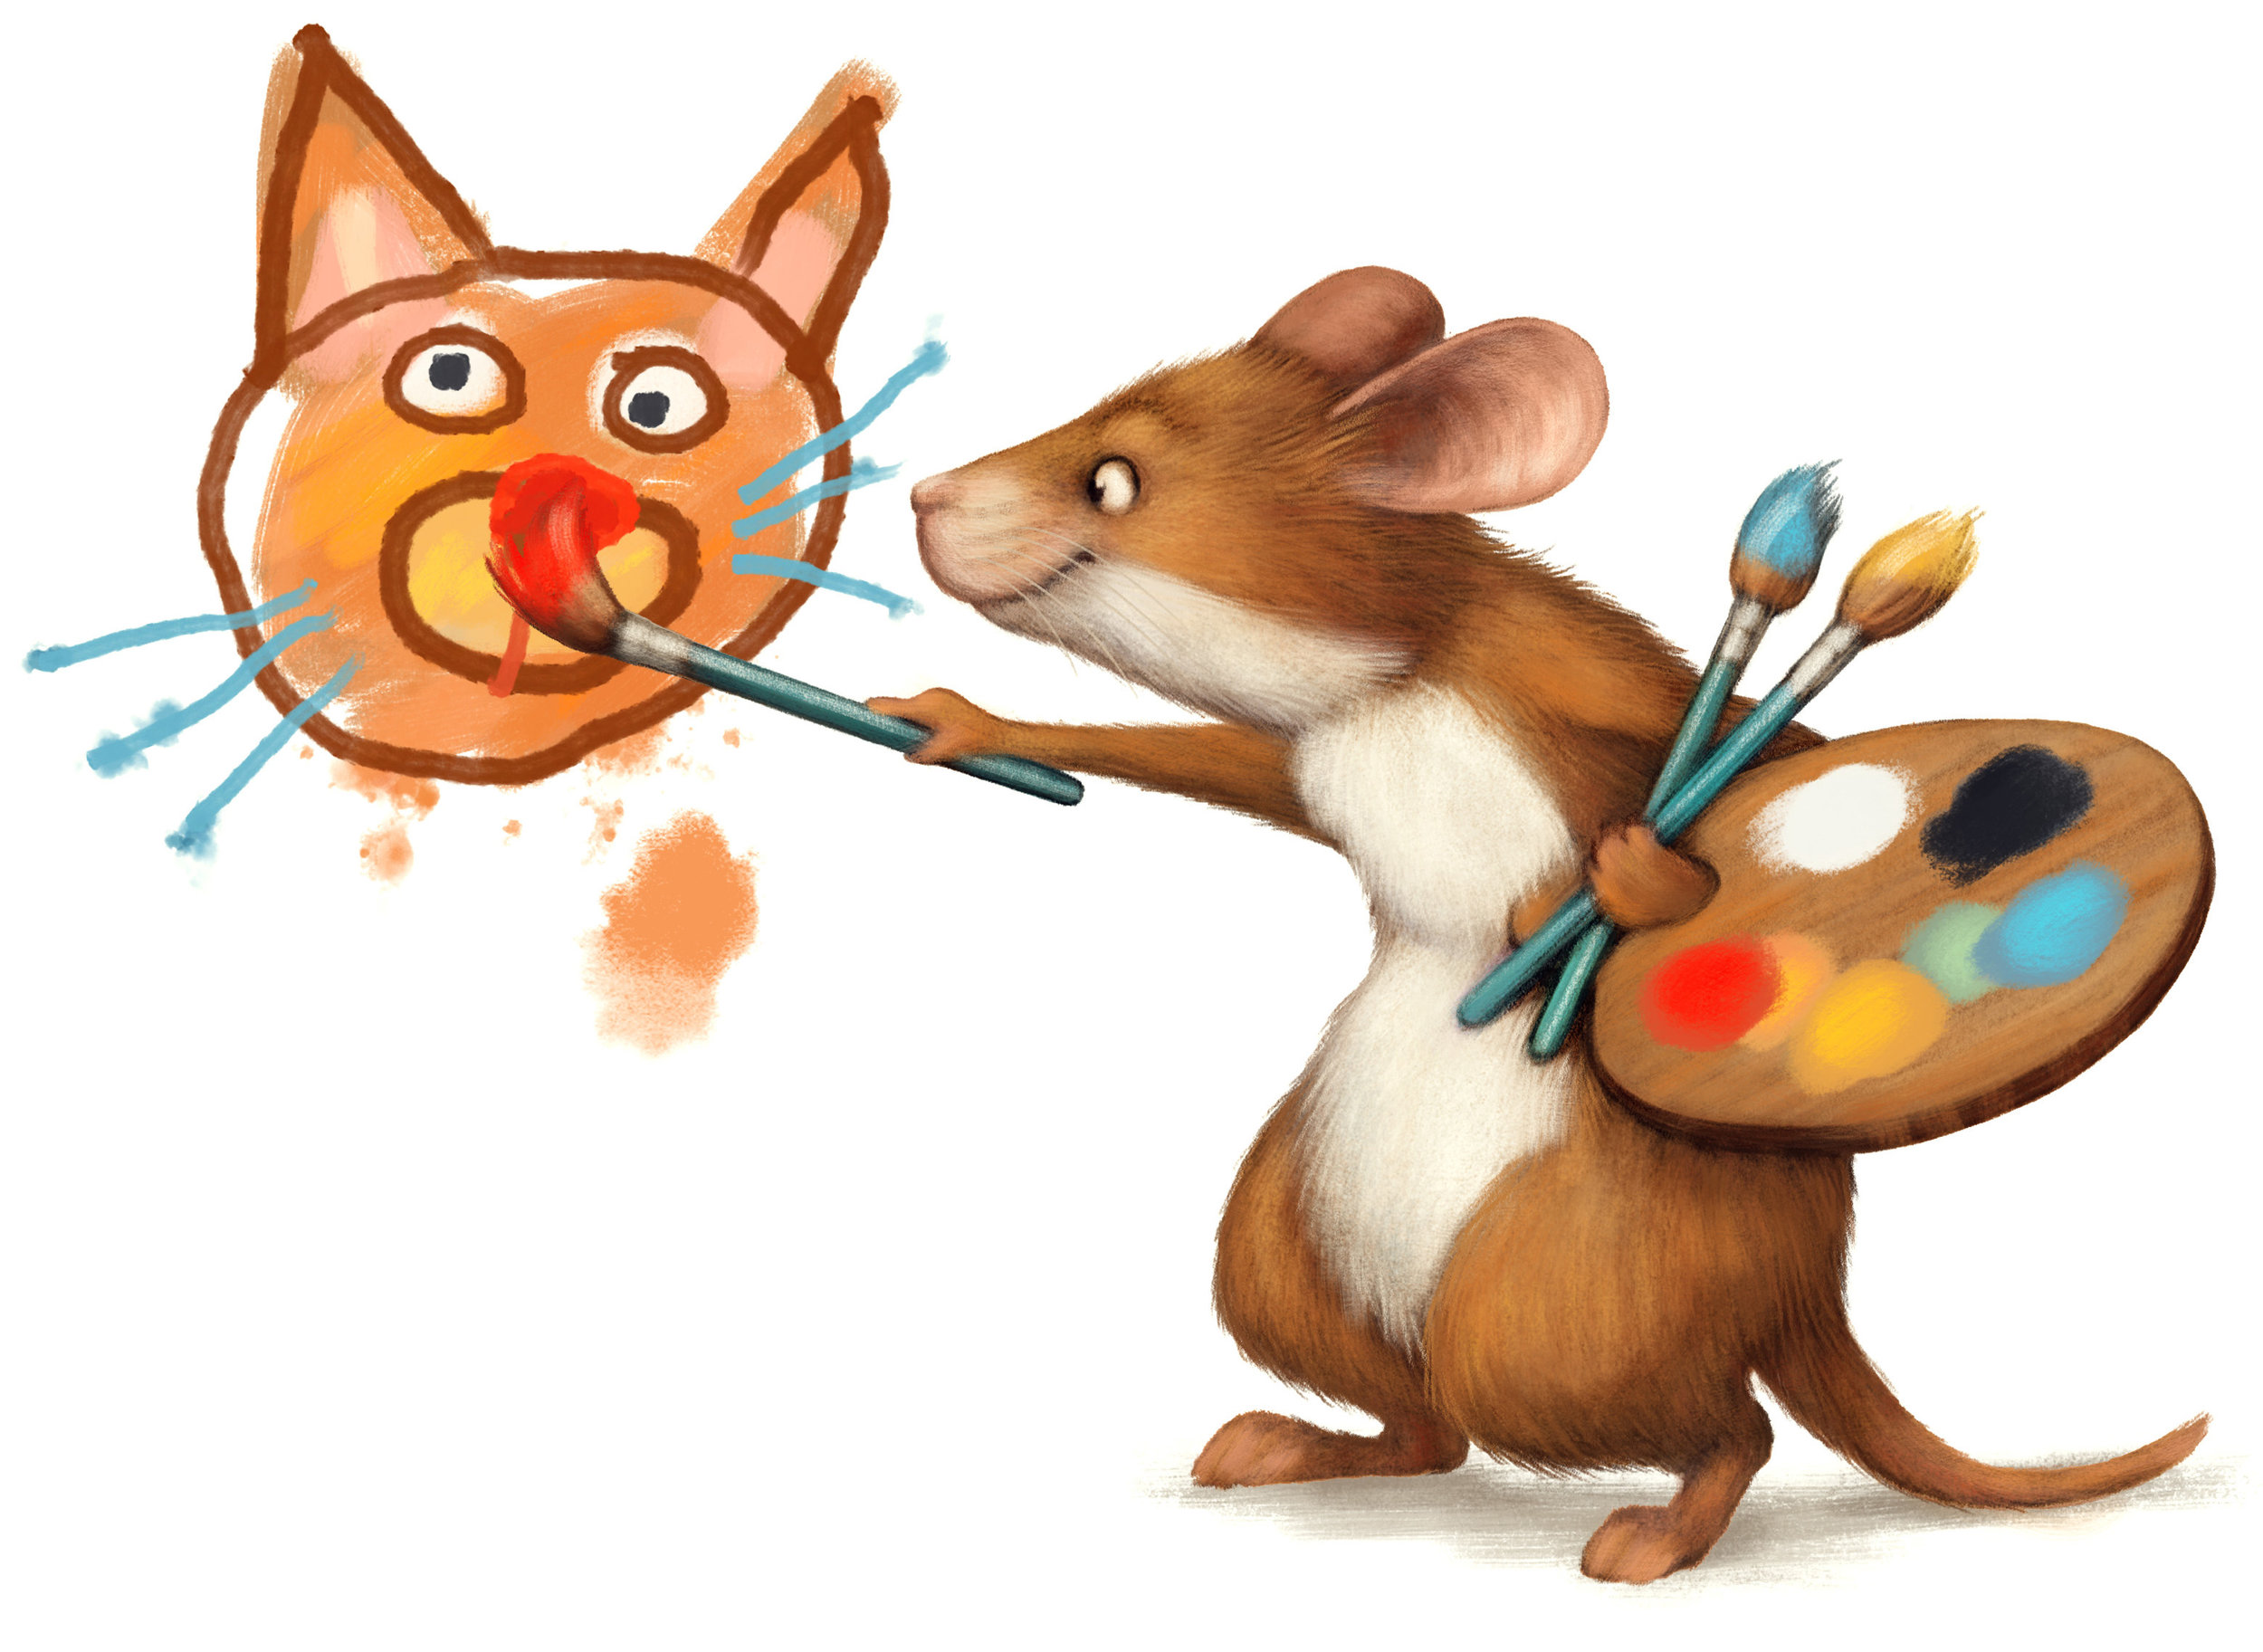 mouse_painter2WH2.jpg